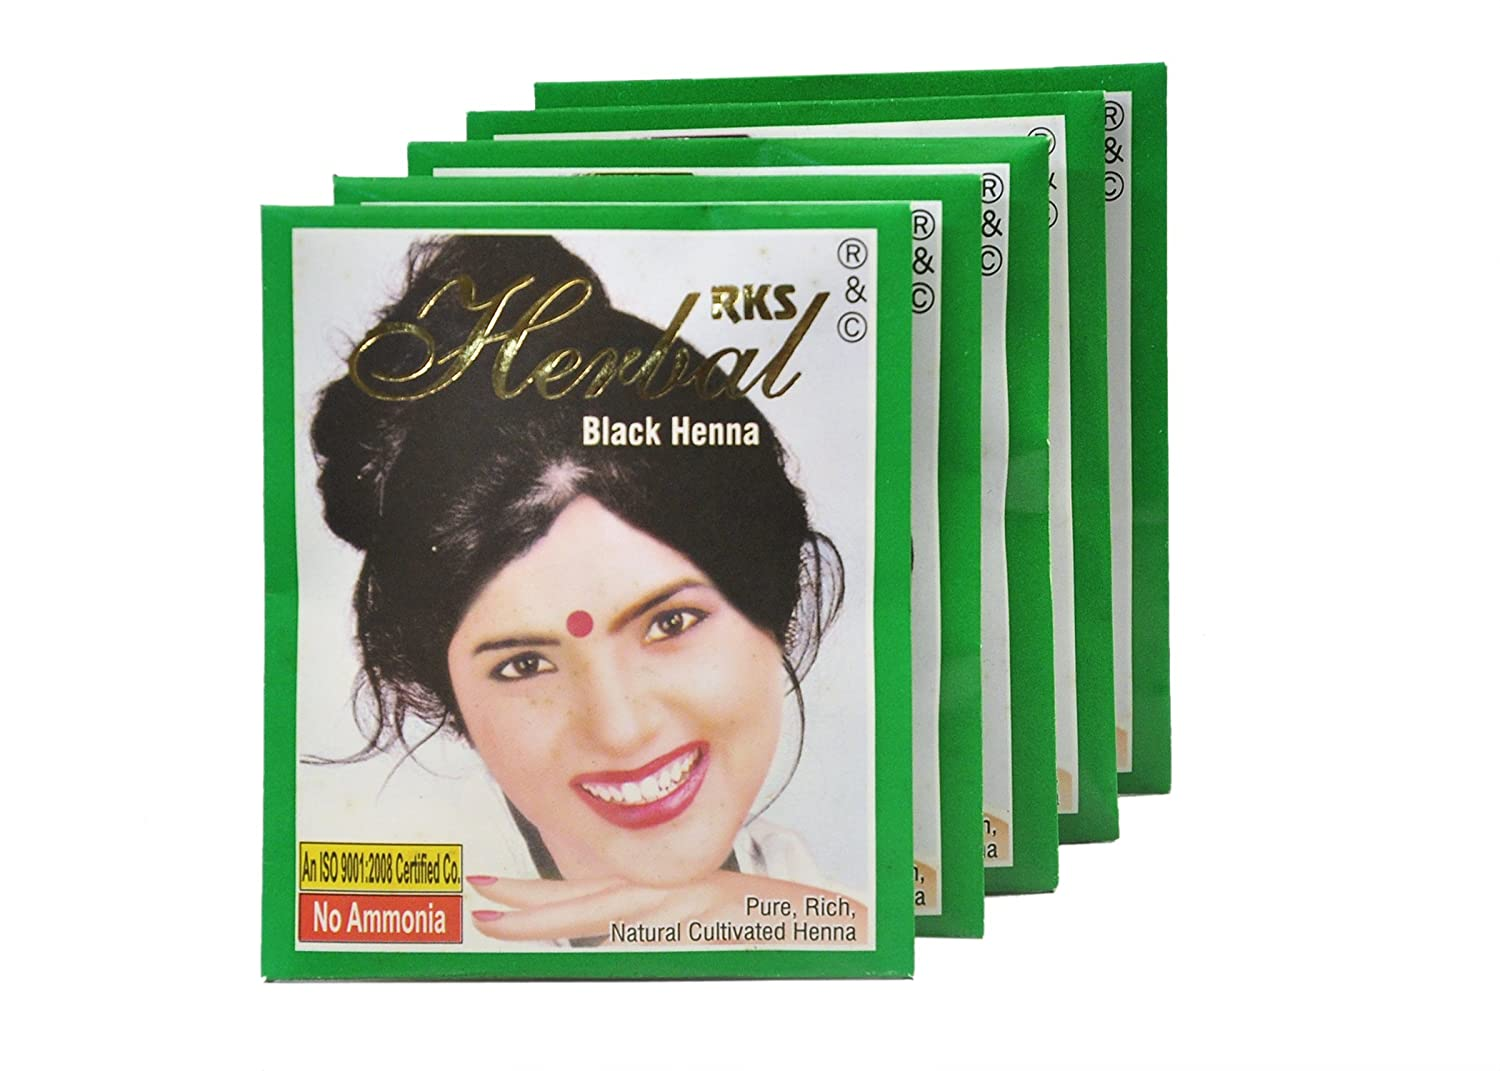 bdad0f156 Buy RKS Herbal Black Henna (PACK OF 2 BOX) Online at Low Prices in India -  Amazon.in